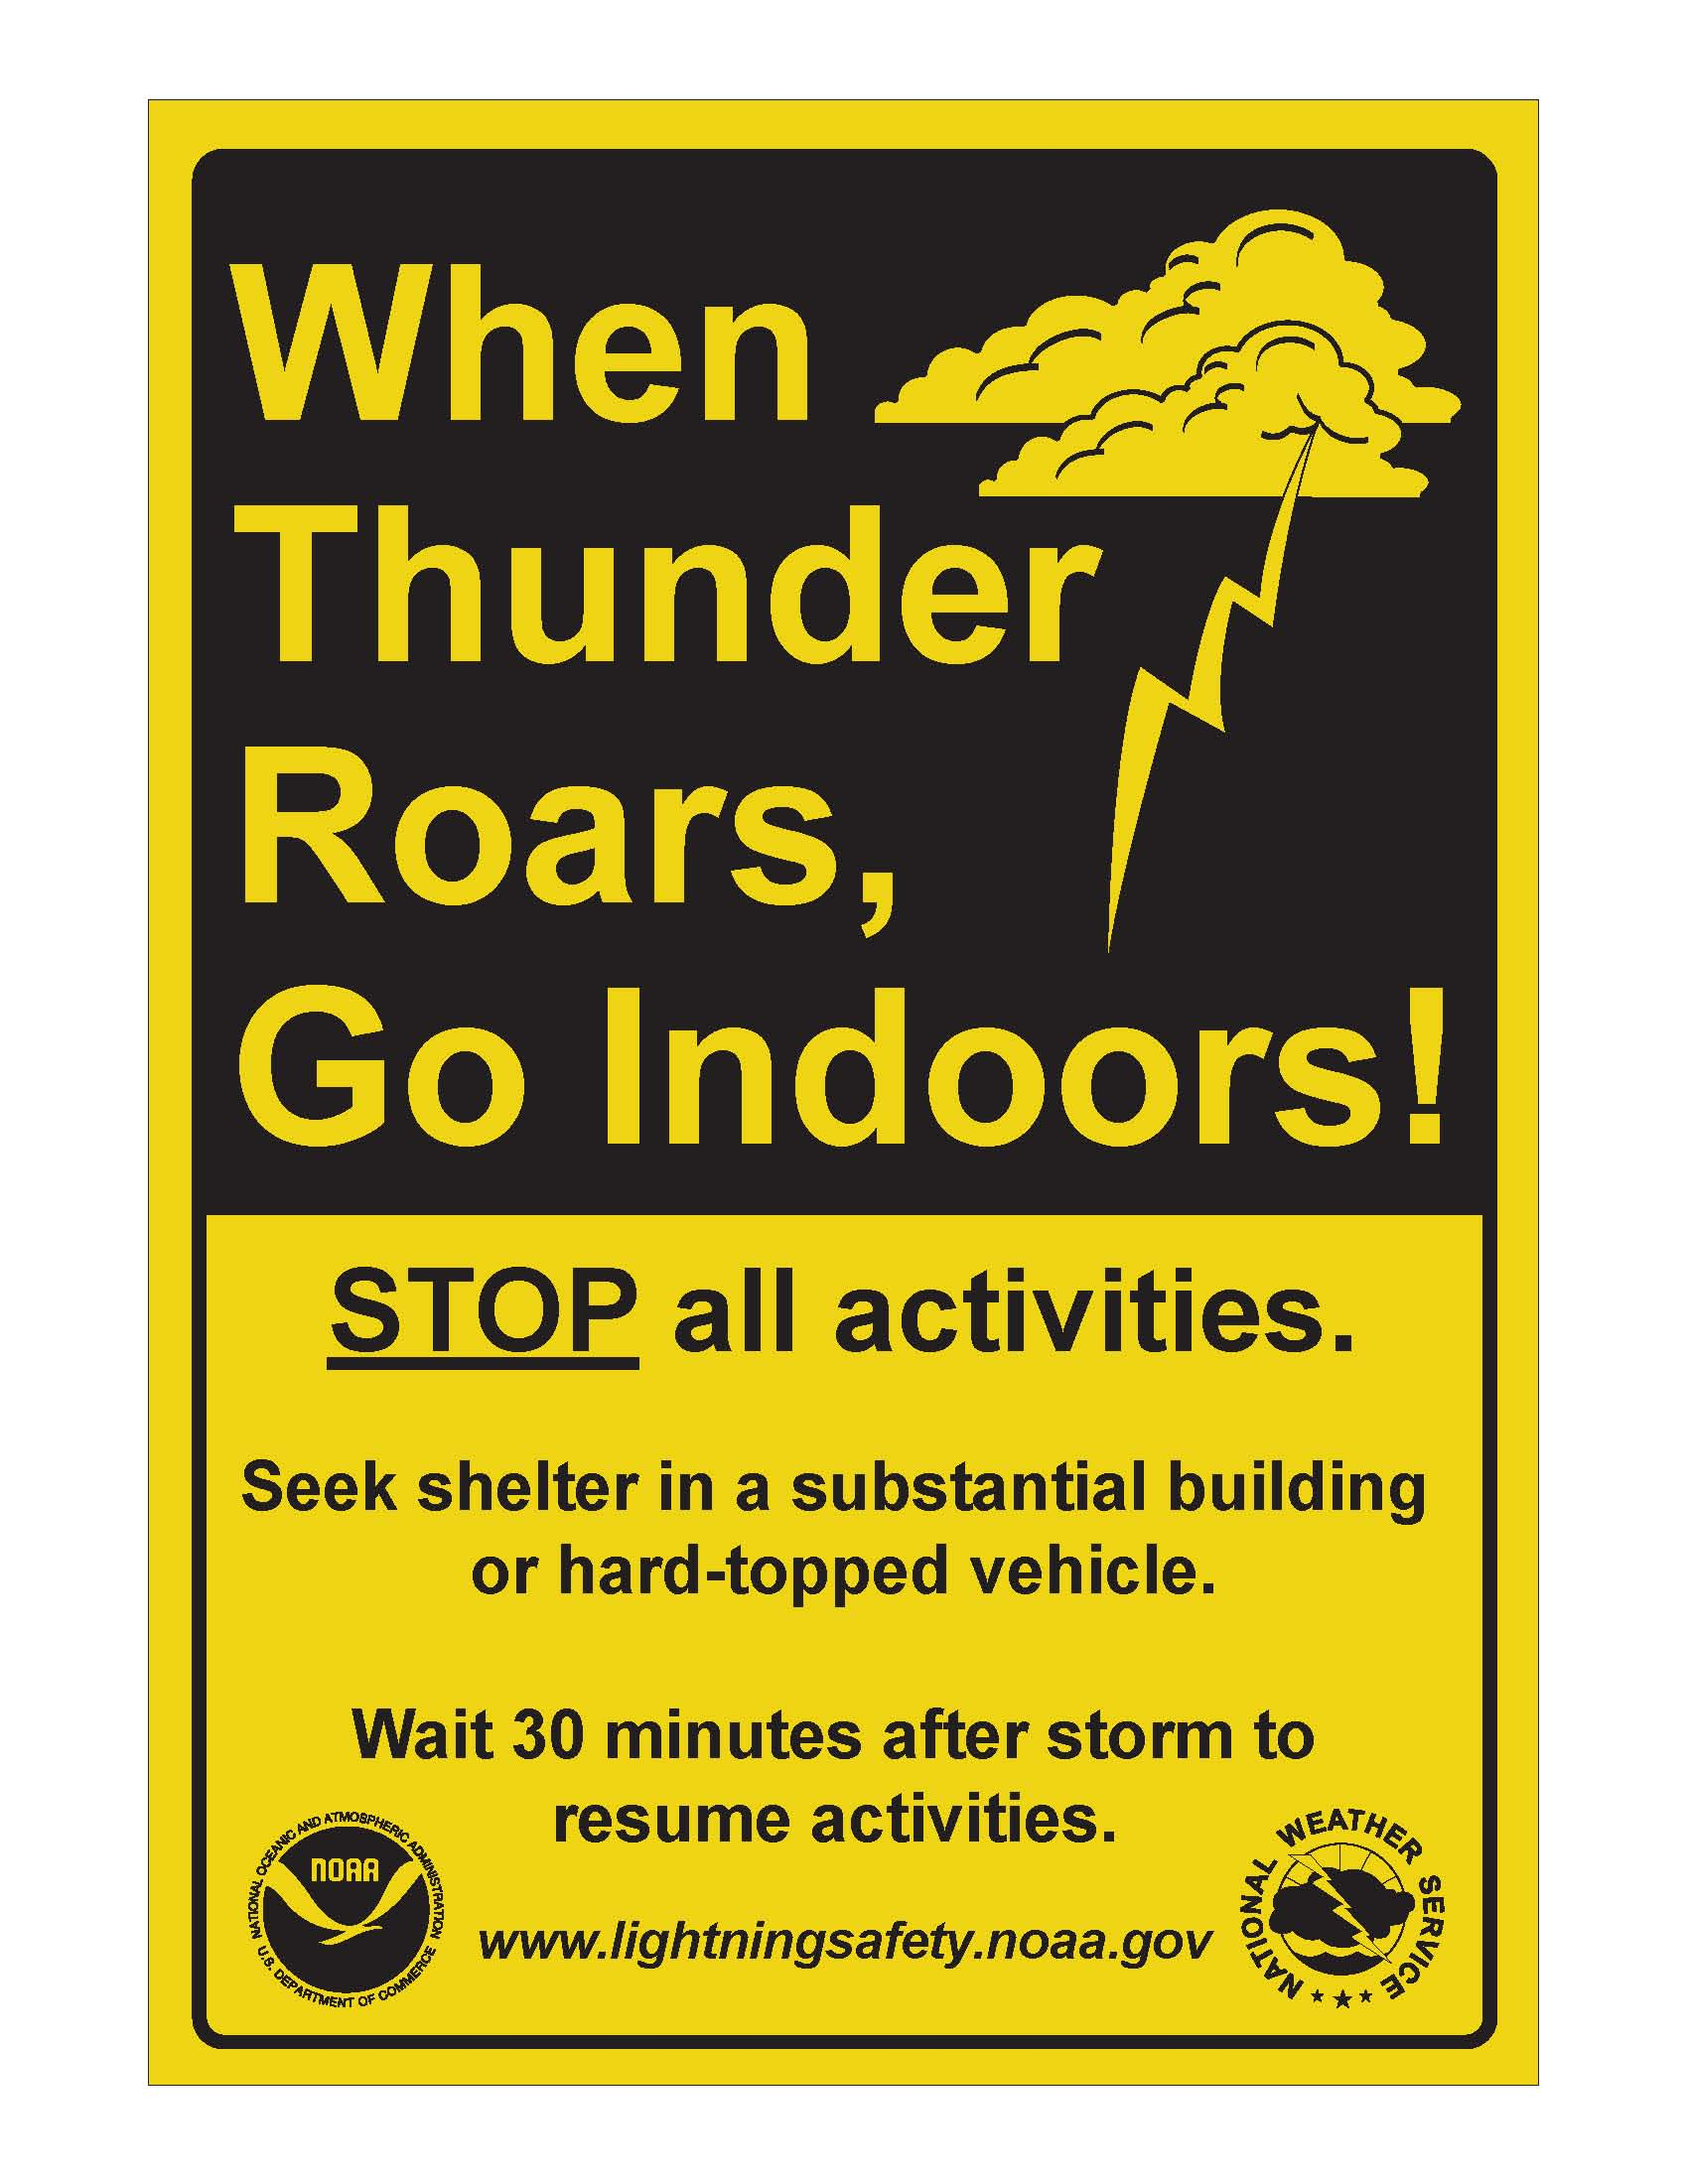 photo: NOAA via commons.wikimedia.org;desc: When thunderstorm is coming, find a safe indoor place to hide.;licence: cc;link: https://commons.wikimedia.org/wiki/File:Tall_lightning_sign.jpg;